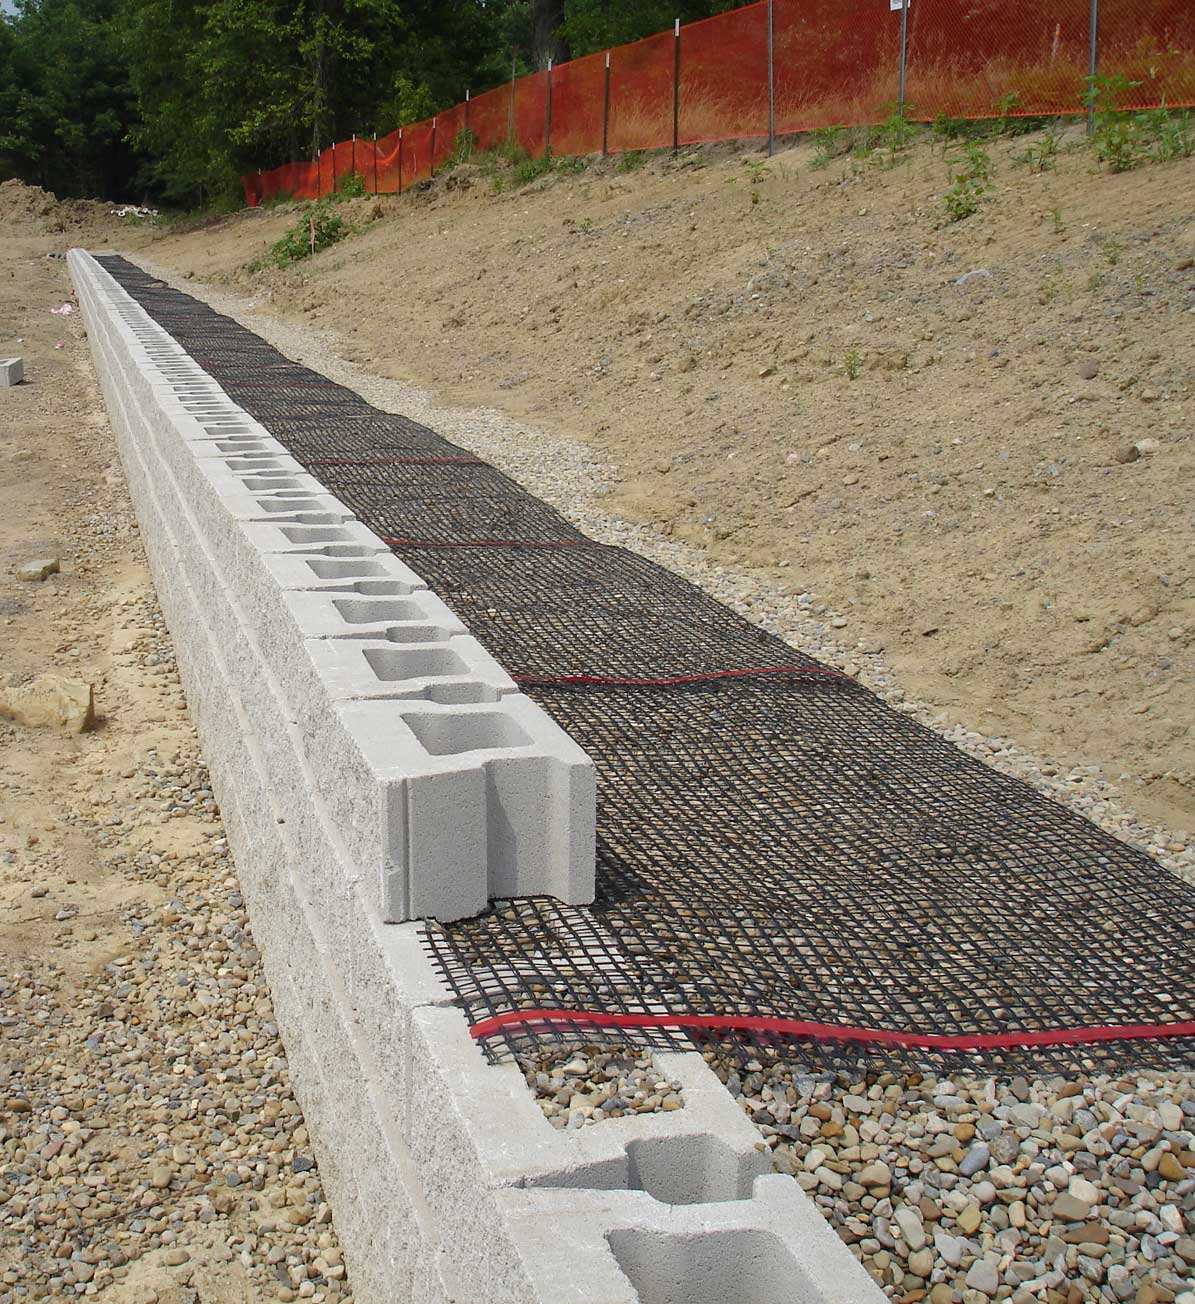 Build A Long Lasting Block Retaining Wall: 5 Tips For An Everlasting Block Retaining Wall